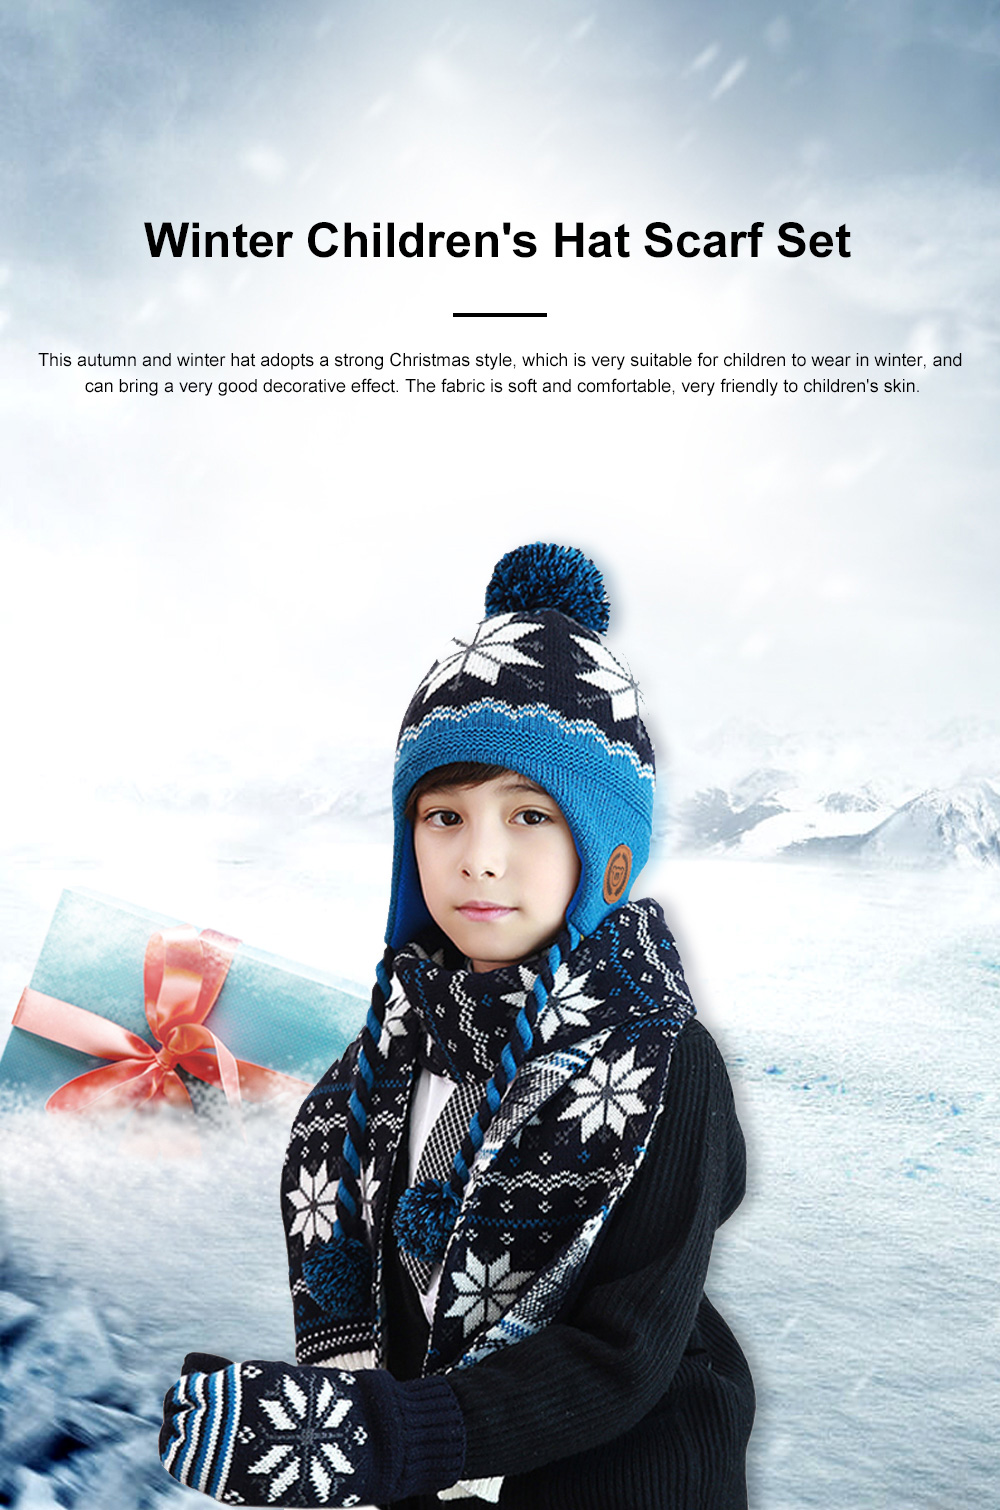 New Children's Hat Warm and Plush Hat for Boys and Girls Snow Flake Decorated Christmas Style Autumn Winter Hat 0